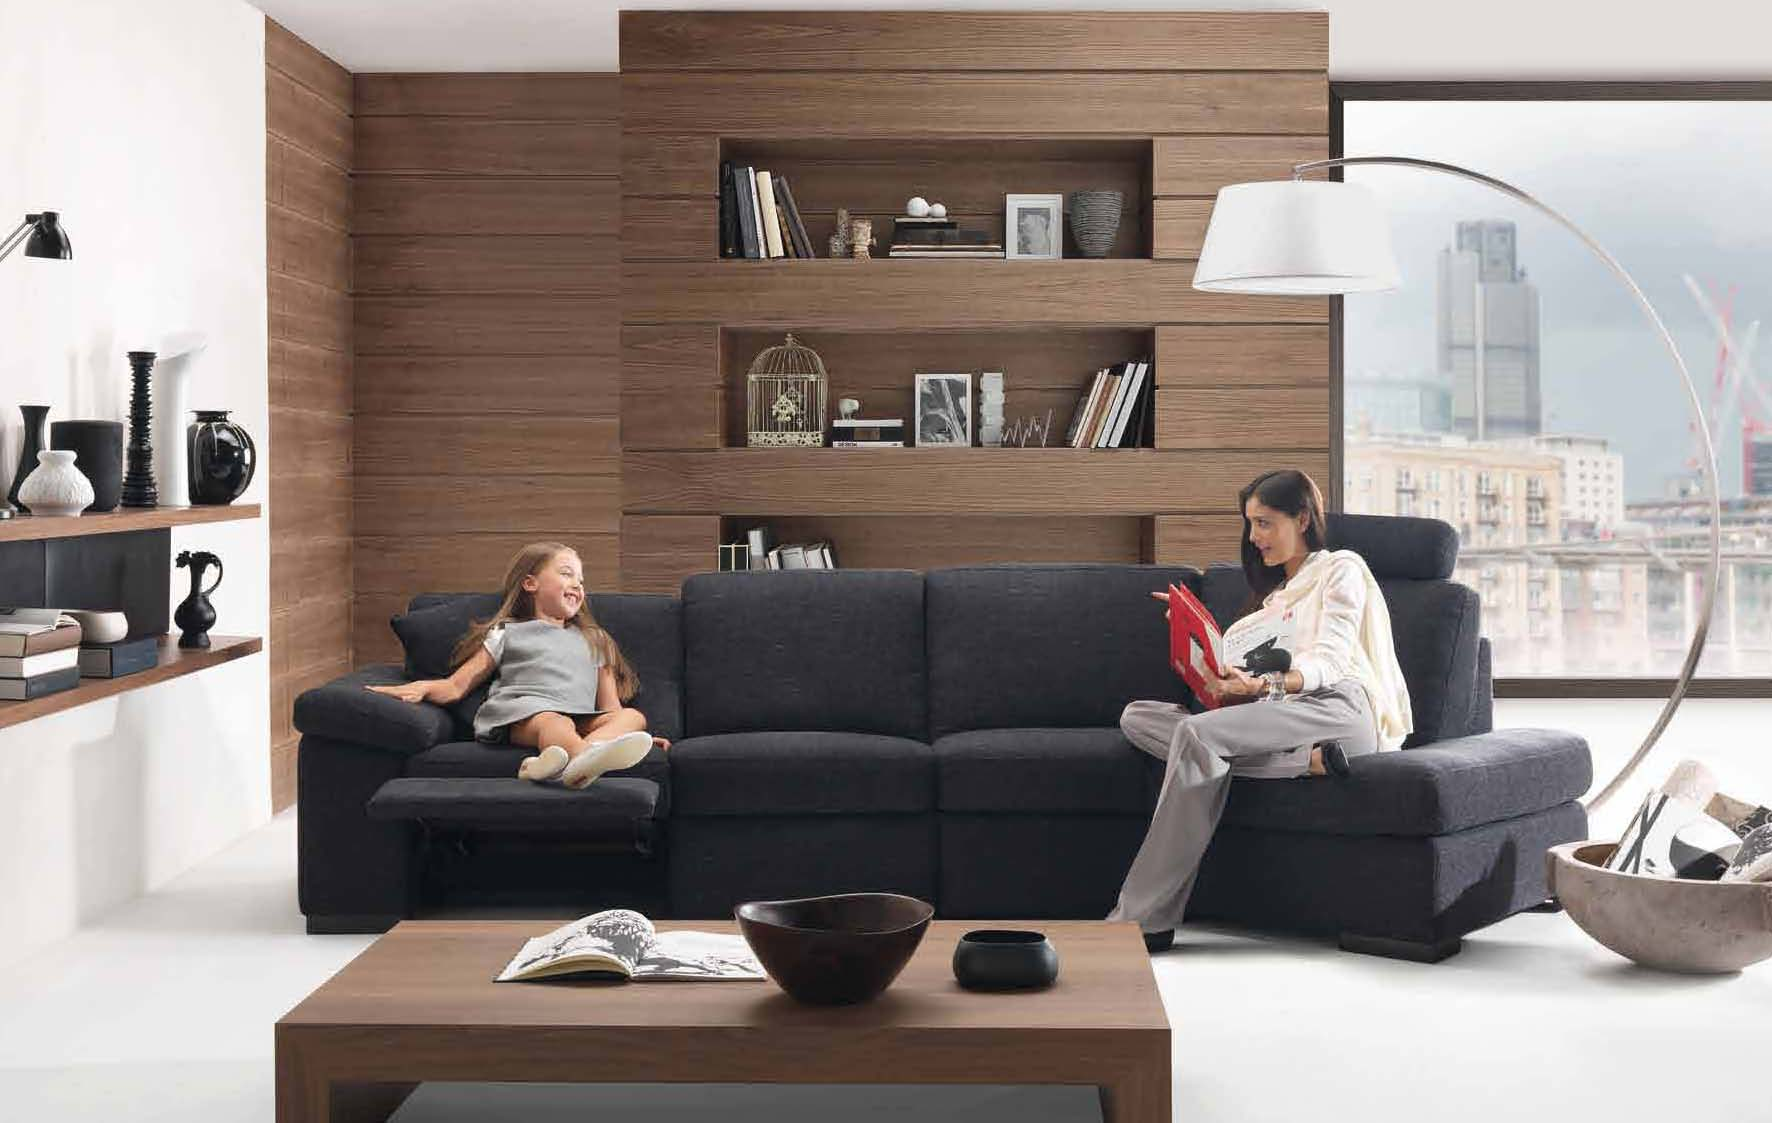 Living room styles 2010 by natuzzi for Internal design living room